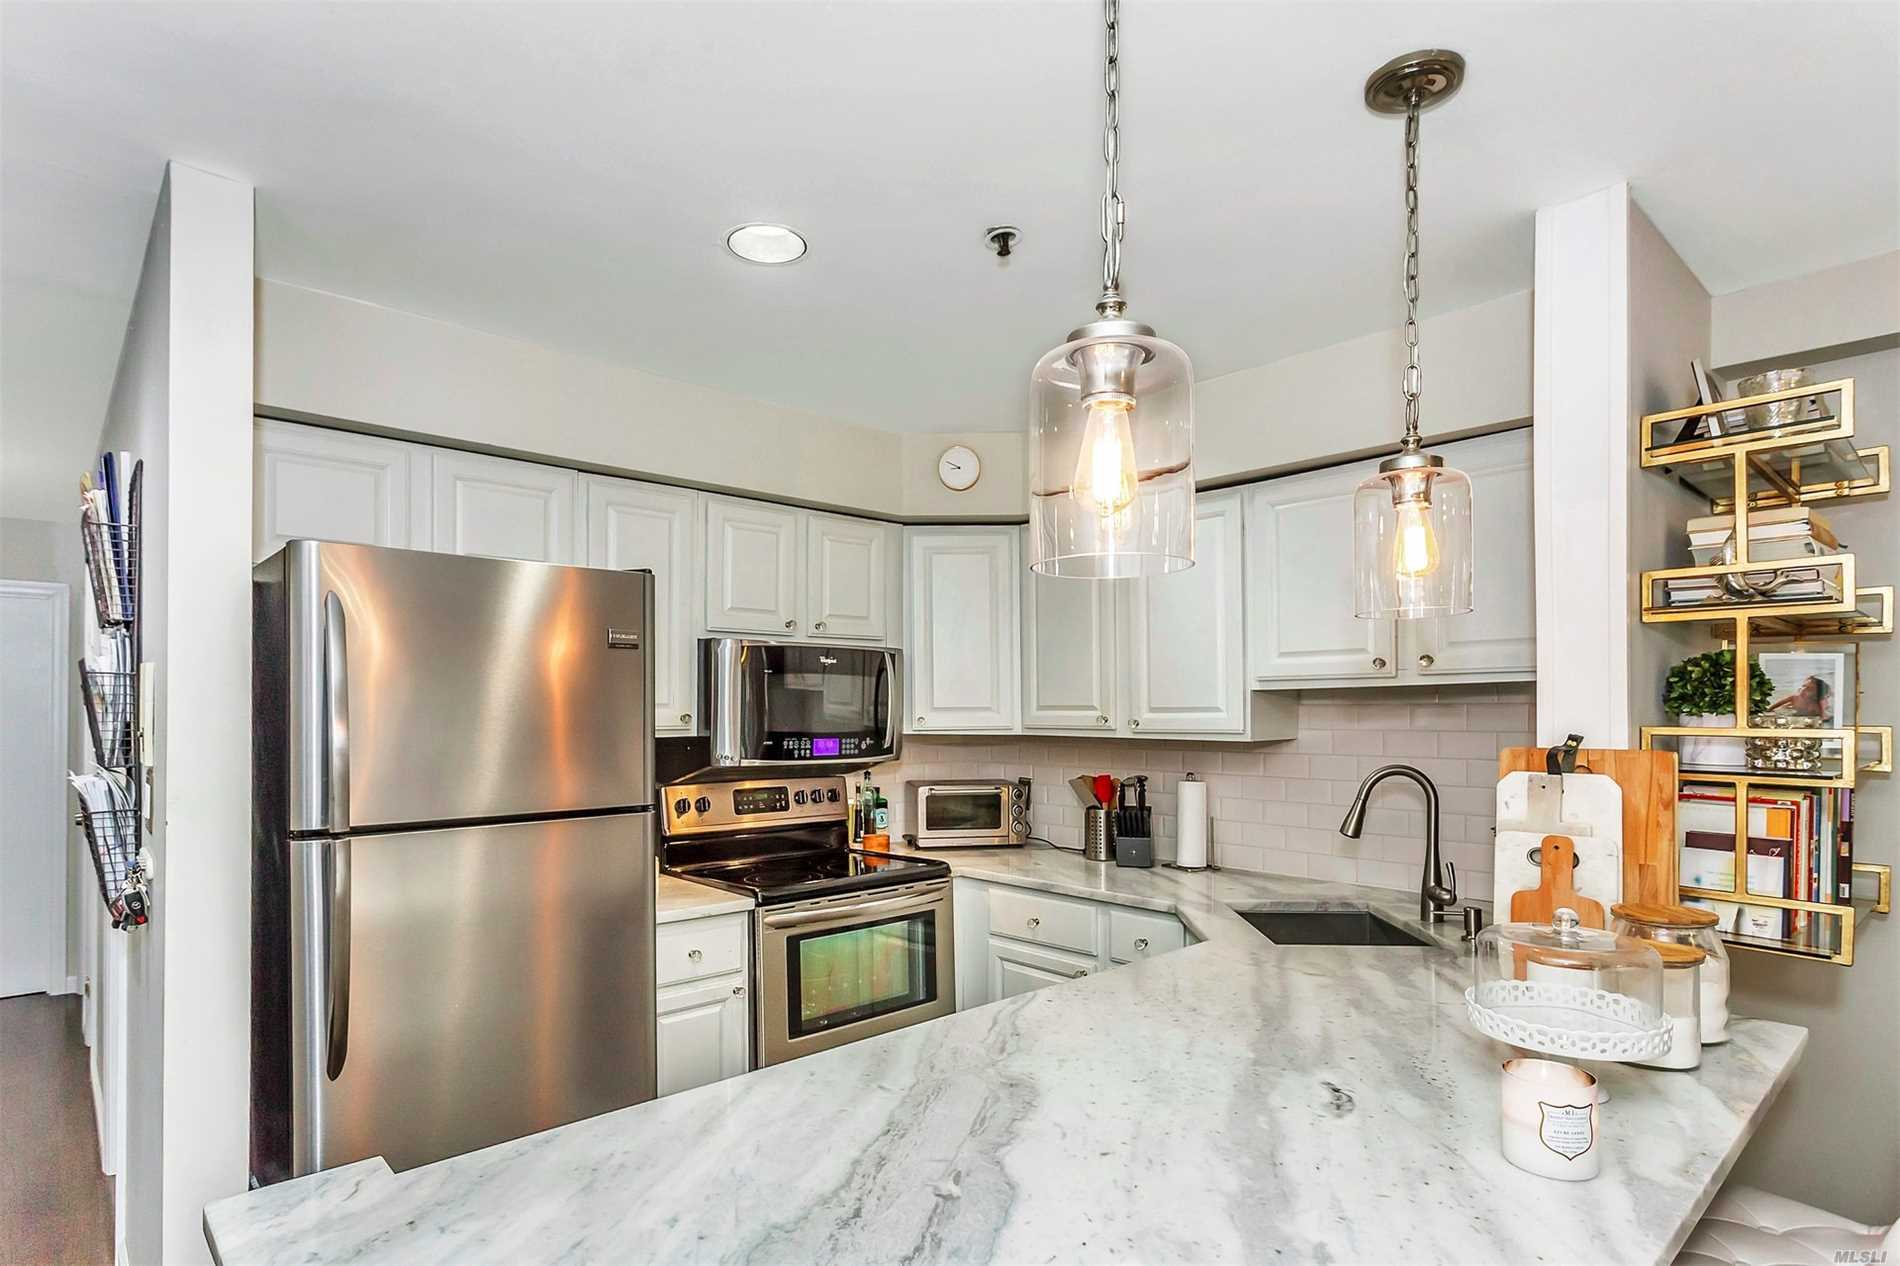 One of a kind, beautifully renovated open concept 2 bedroom condo, with a large terrace. Sunny open floor plan, perfect for entertaining with a chefs kitchen, including quartzite and stainless steel. Brand new bathroom and solid hardwood floors throughout. Blue Ribbon Lynbrook School district #20. Centrally located close to trains, highways, schools, shopping and places of worship! Come see your new home today!